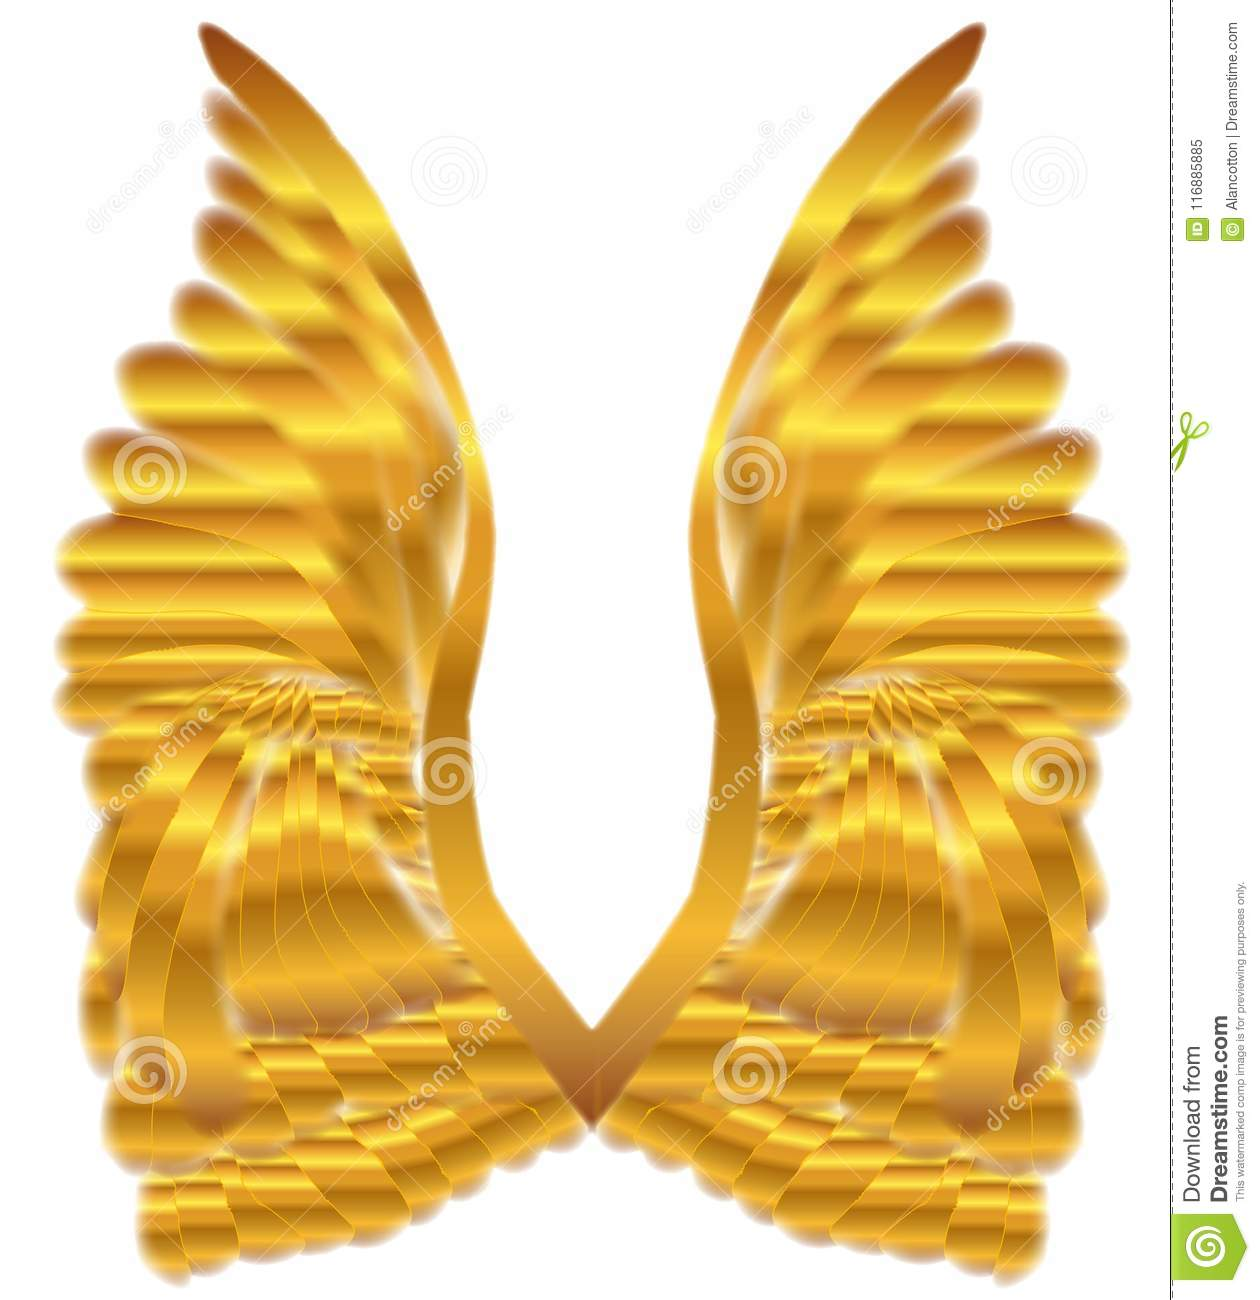 Gold Angel Wings Over White Stock Vector - Illustration of angelic ...